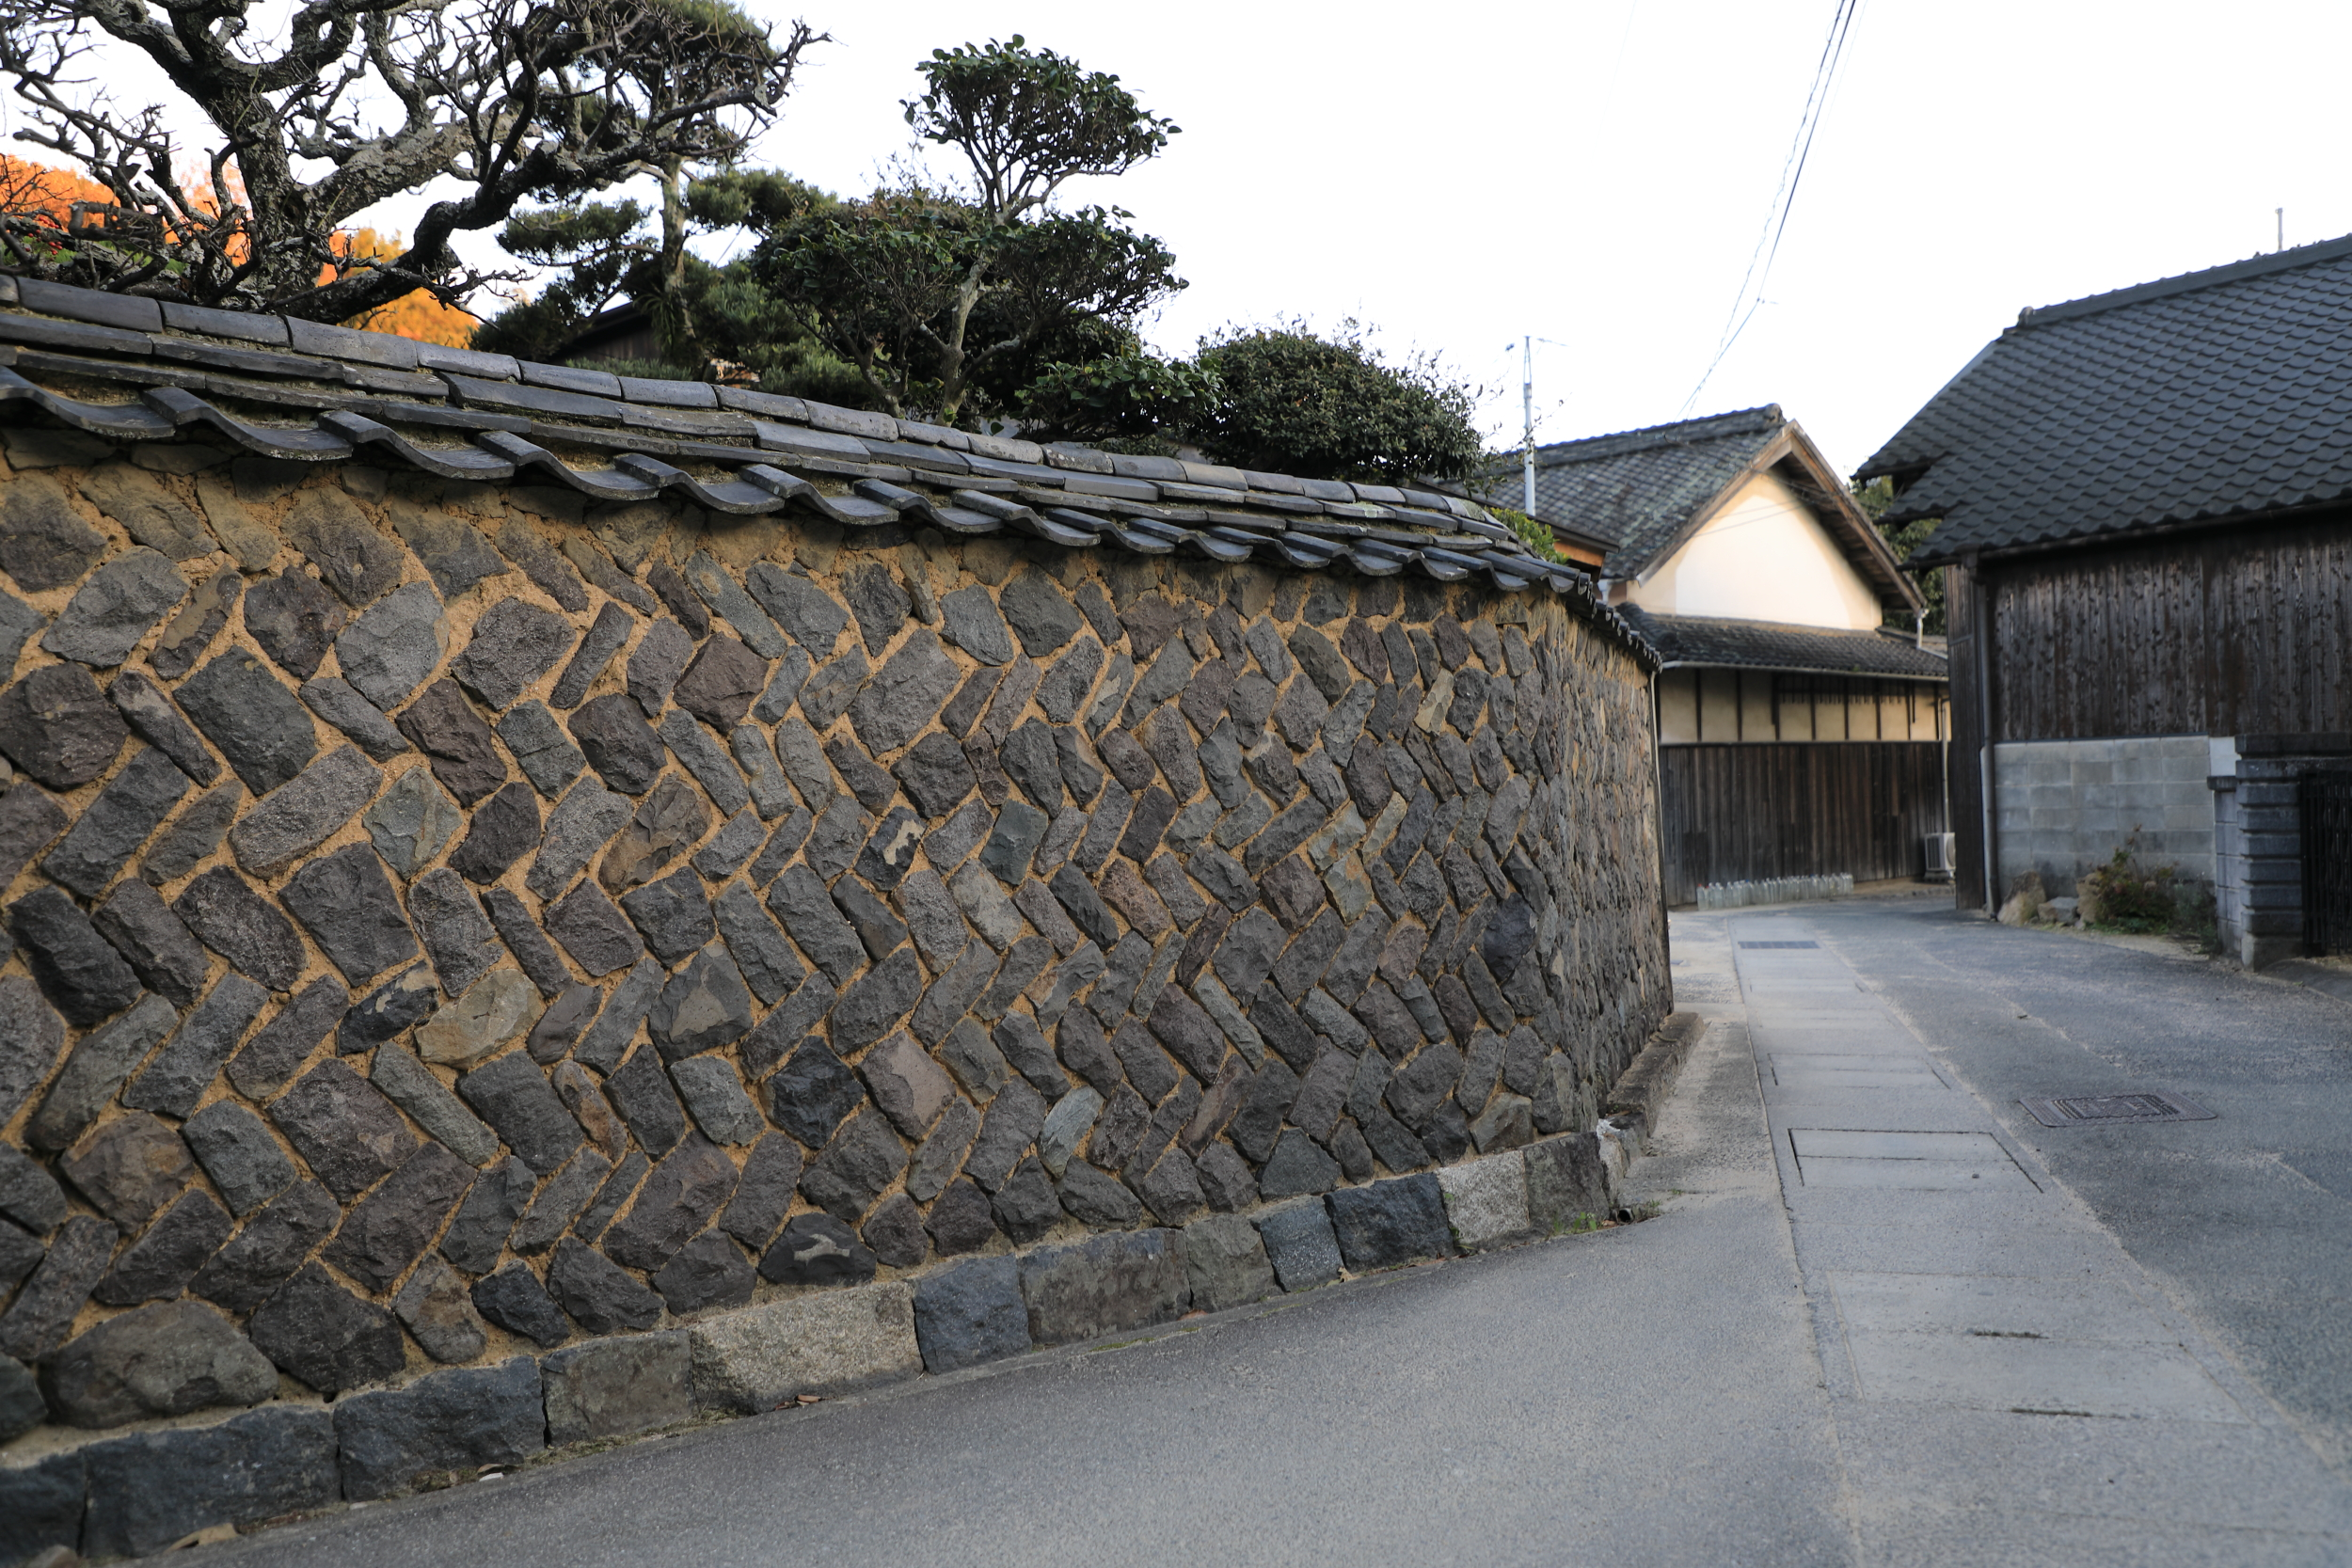 The characteristic rock walls of Shodoshima are made from the island's abundant granite, which was used to build Osaka and other castles in the 16th and 17th centuries.